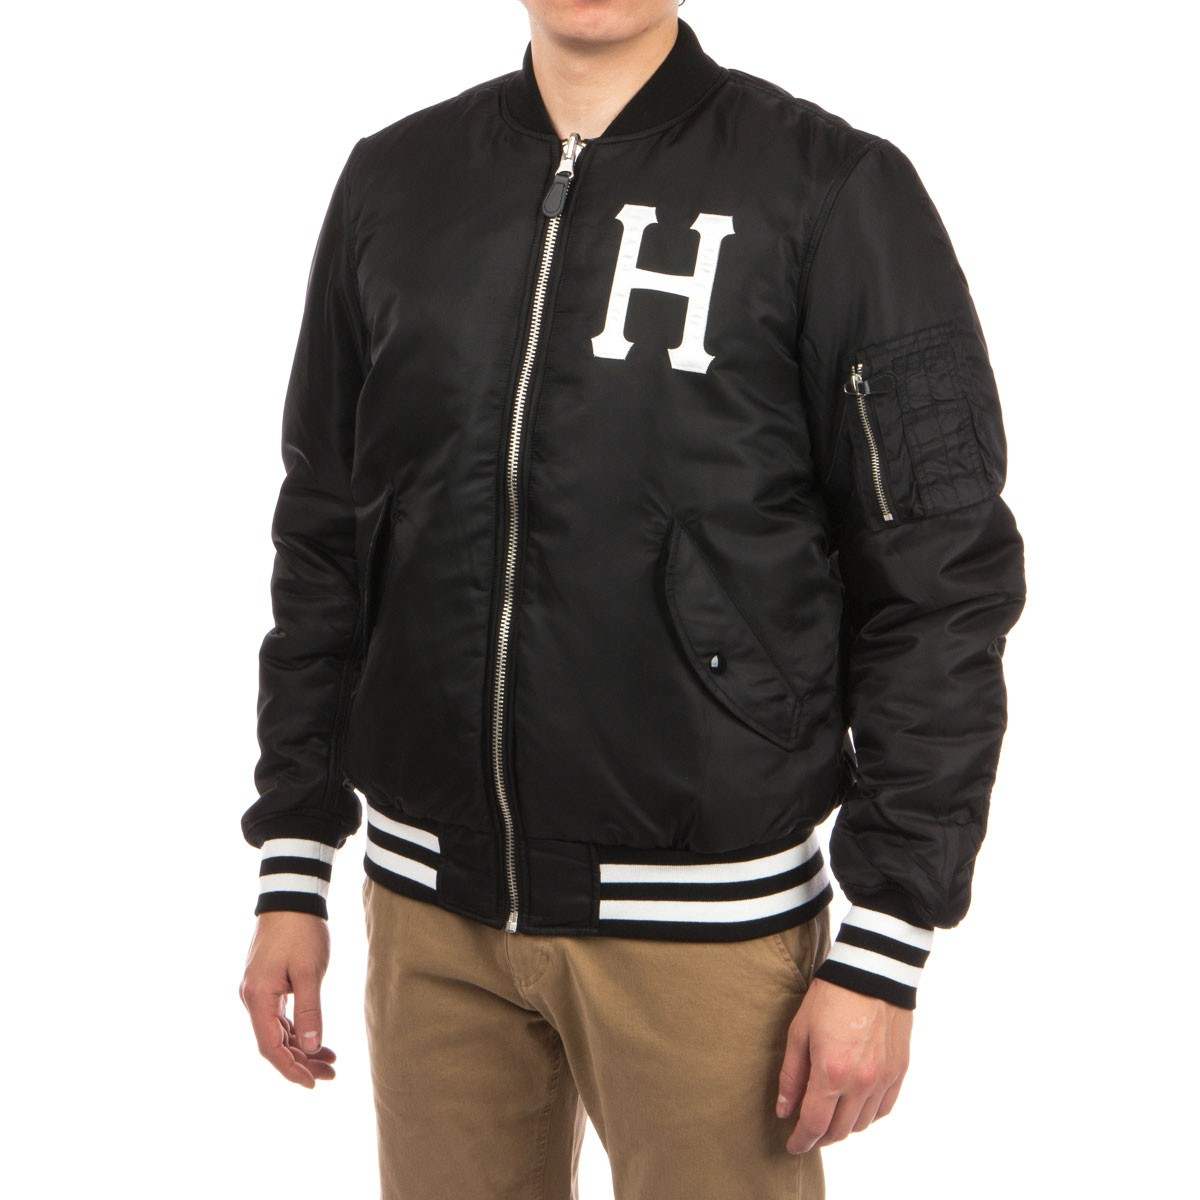 factory authentic wholesale dealer brand new HUF MA-1 Reversible Bomber Jacket - Black/Camo